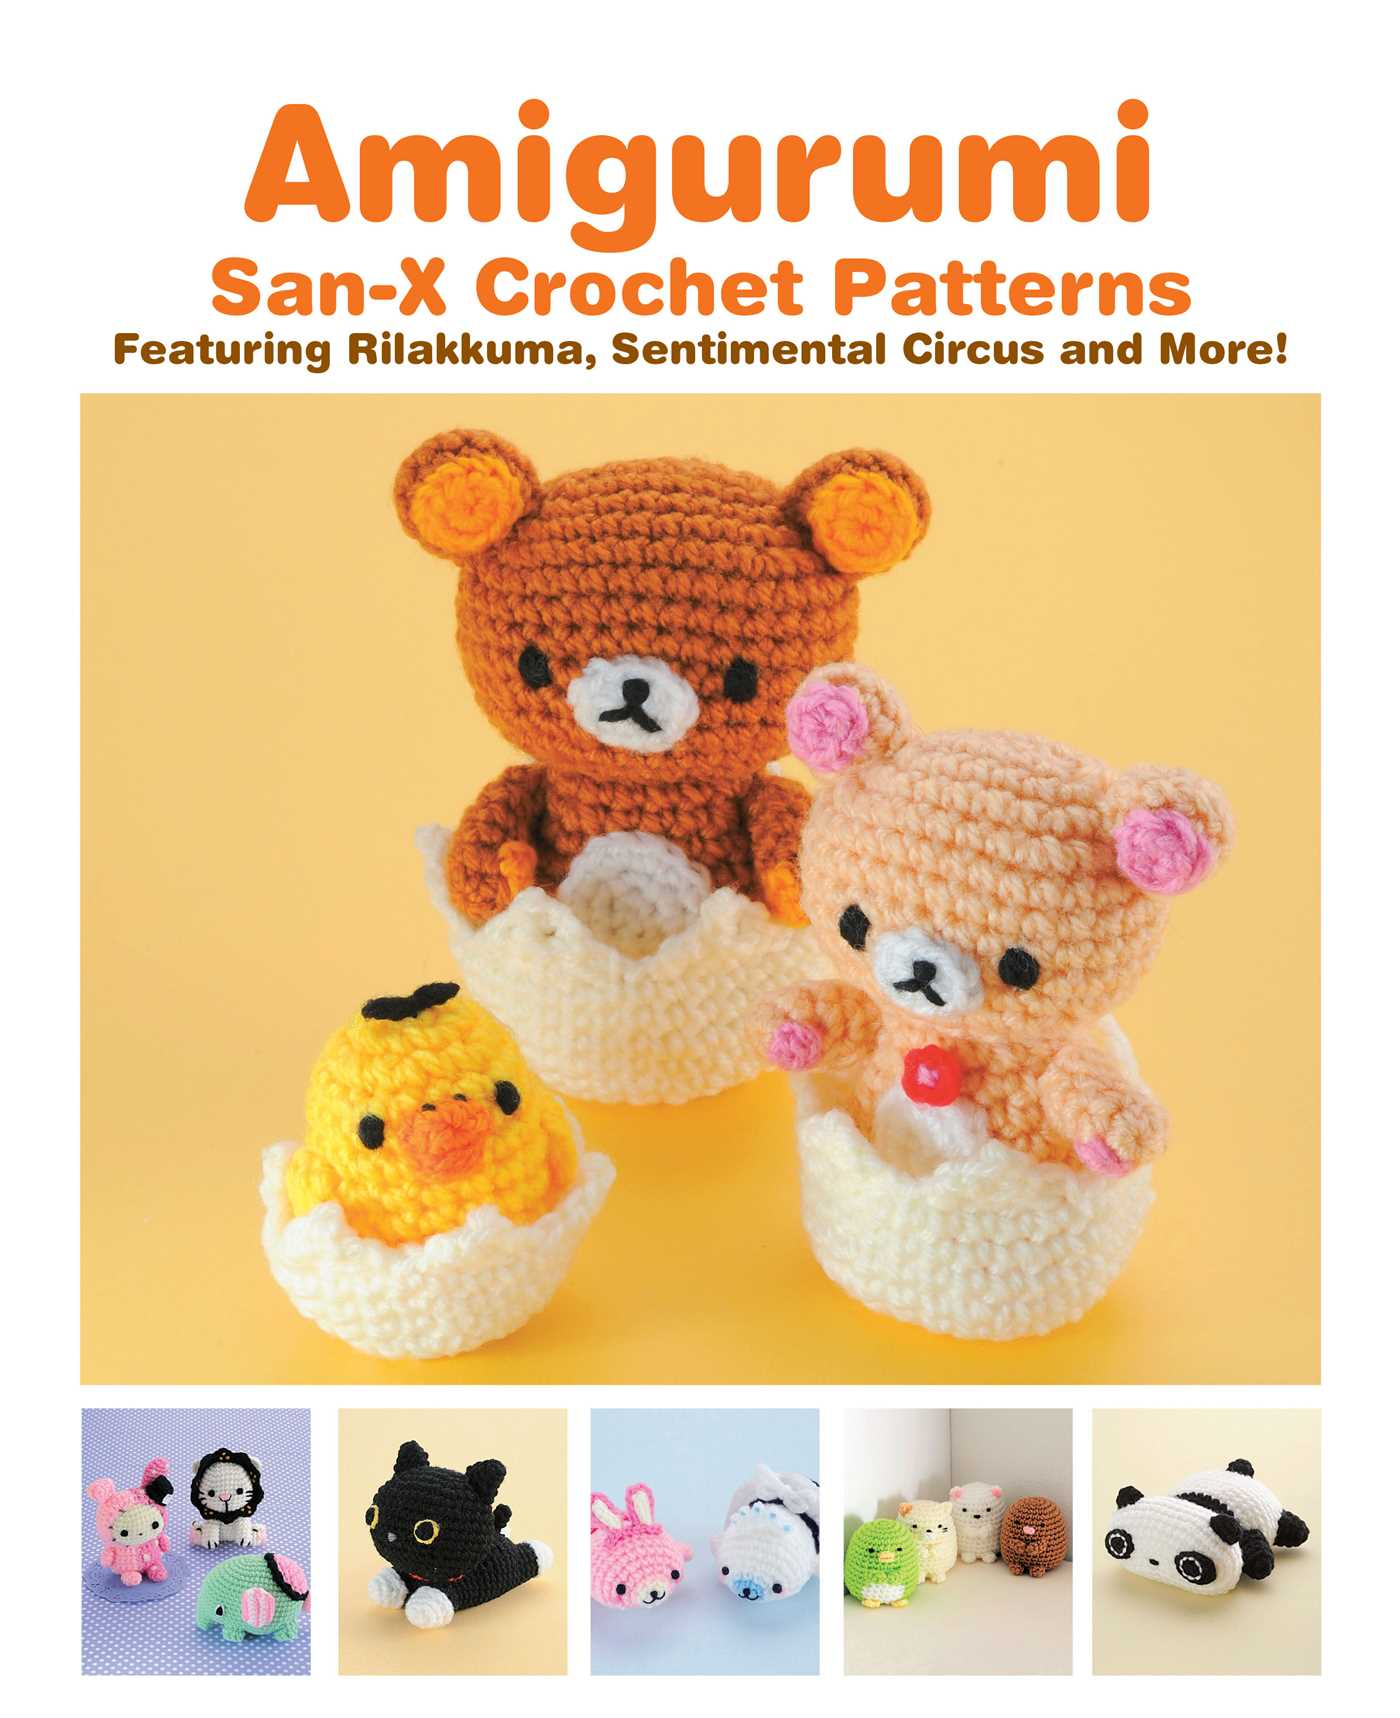 Amigurumi Treasures: 15 Crochet Projects To Cherish: Lee, Erinna ... | 1718x1400